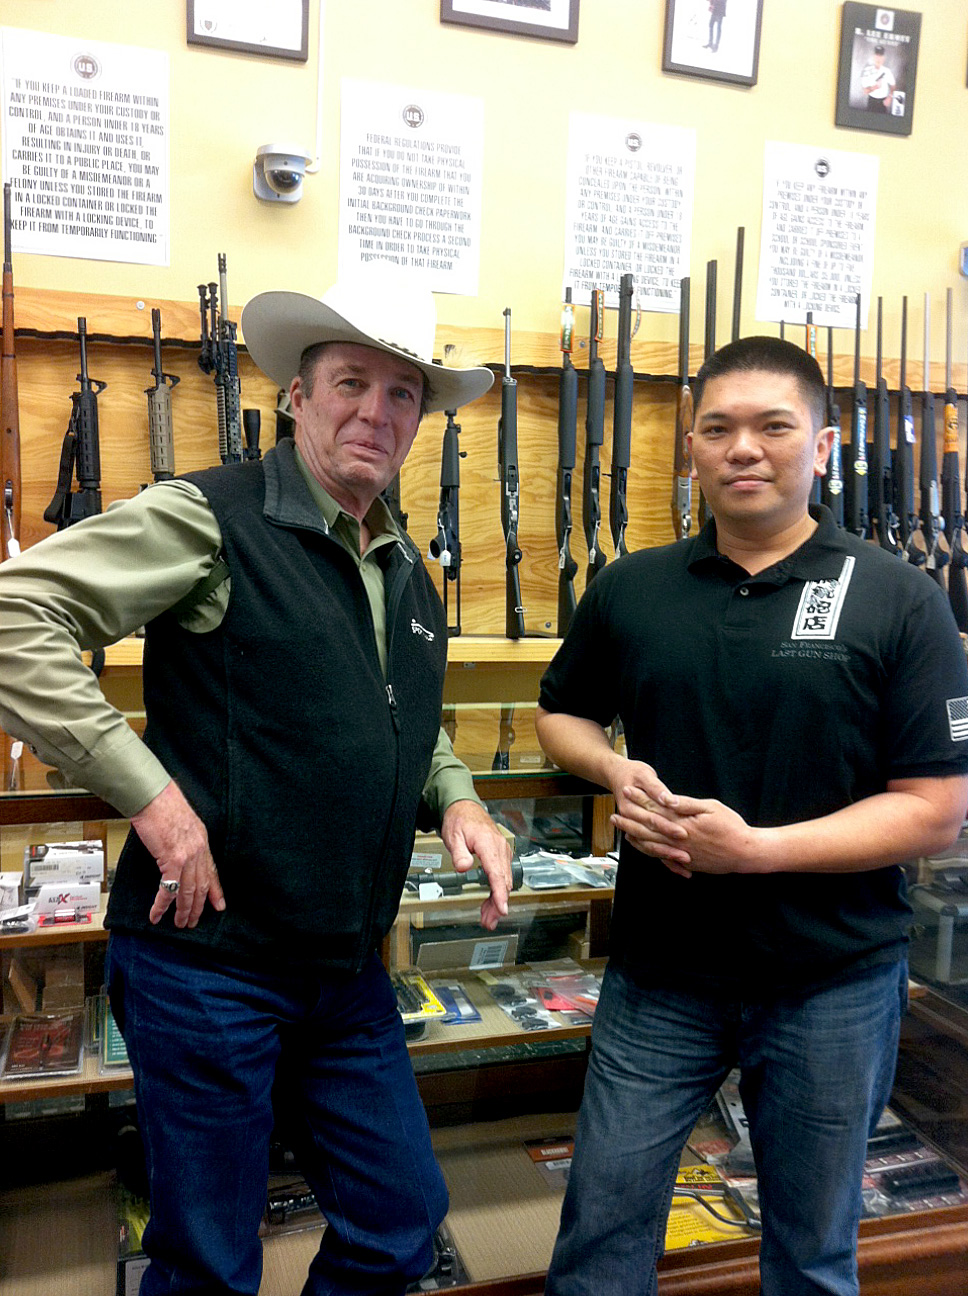 San Francisco's Last Gun Shop Sheriff Jim Wilson